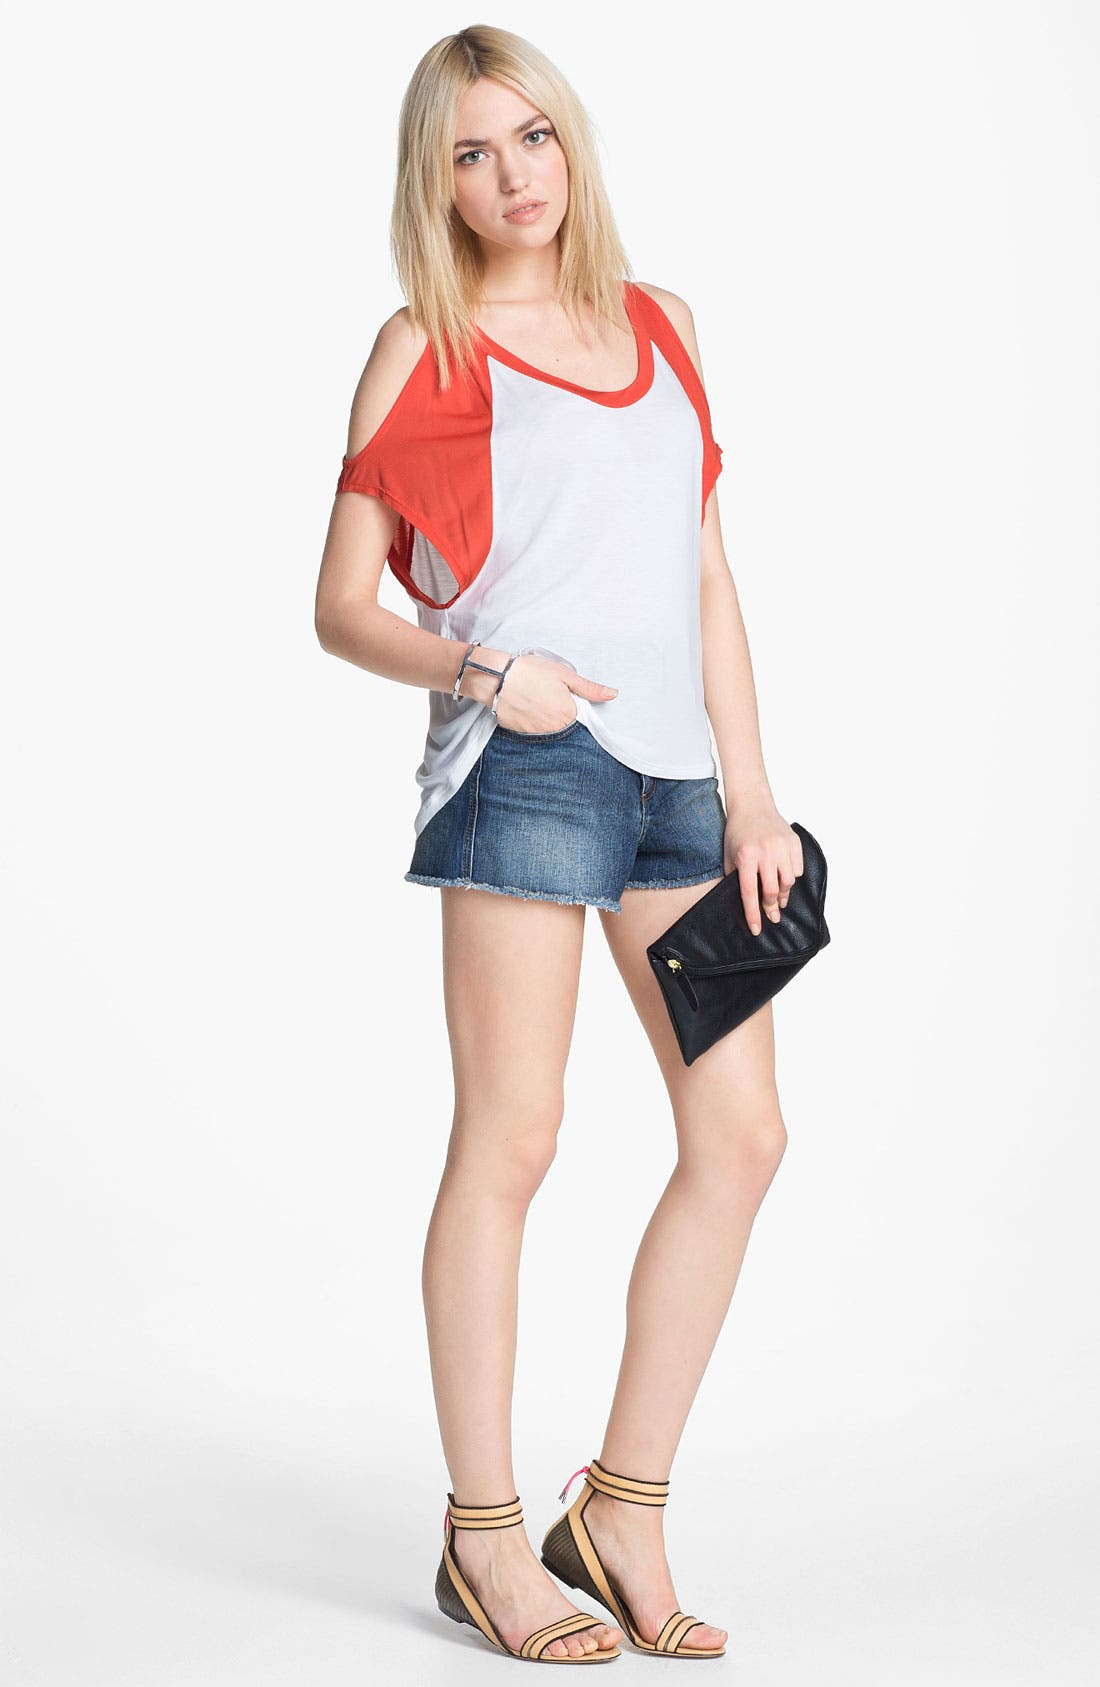 Main Image - Piper Top & Edyson High Waisted Cutoff Shorts